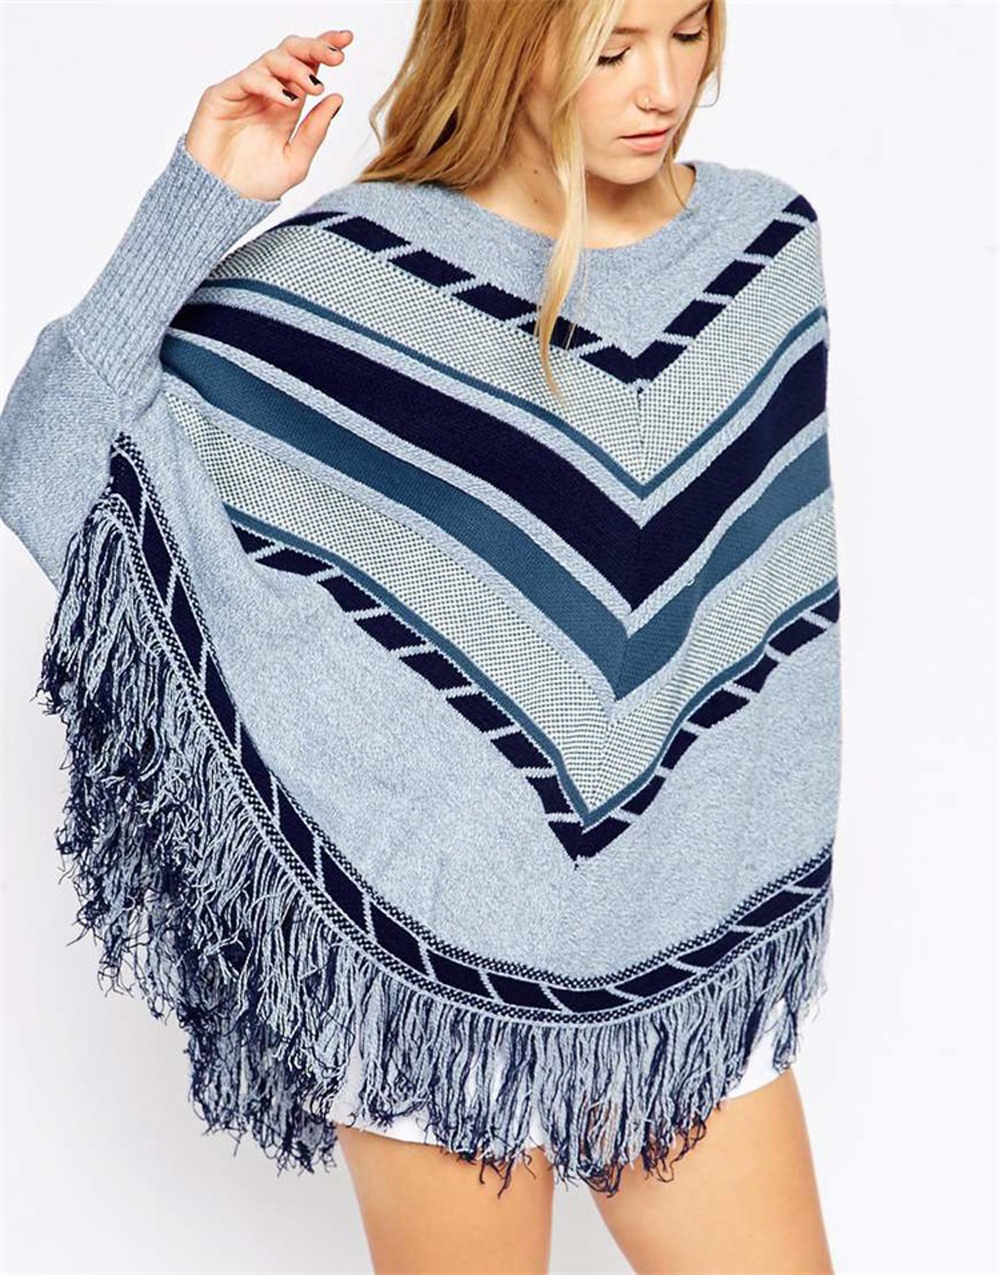 Maternity Tassel Cape Shawl Sweater Poncho Ladies' Cape with Fringed Hem Striped Patchwork Pullover Fashionable Retro Style geminijets gjdlh1226 a340 300 d aife 1 400 lufthansa